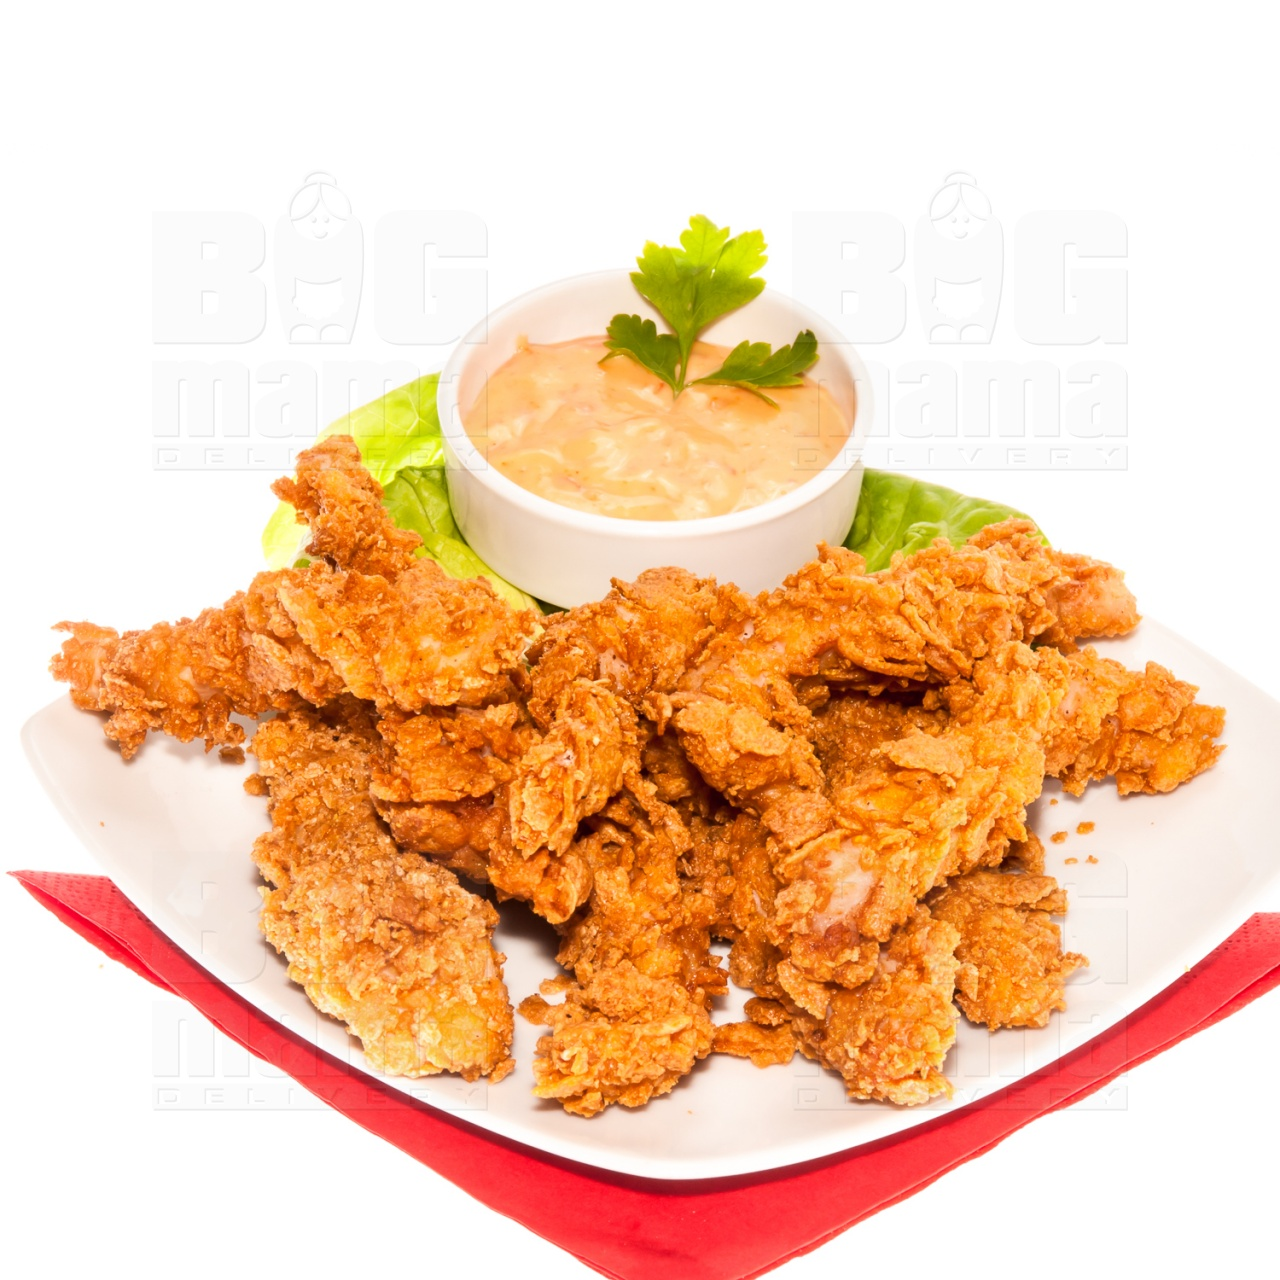 Product #141 image - Crispy chicken cu sos